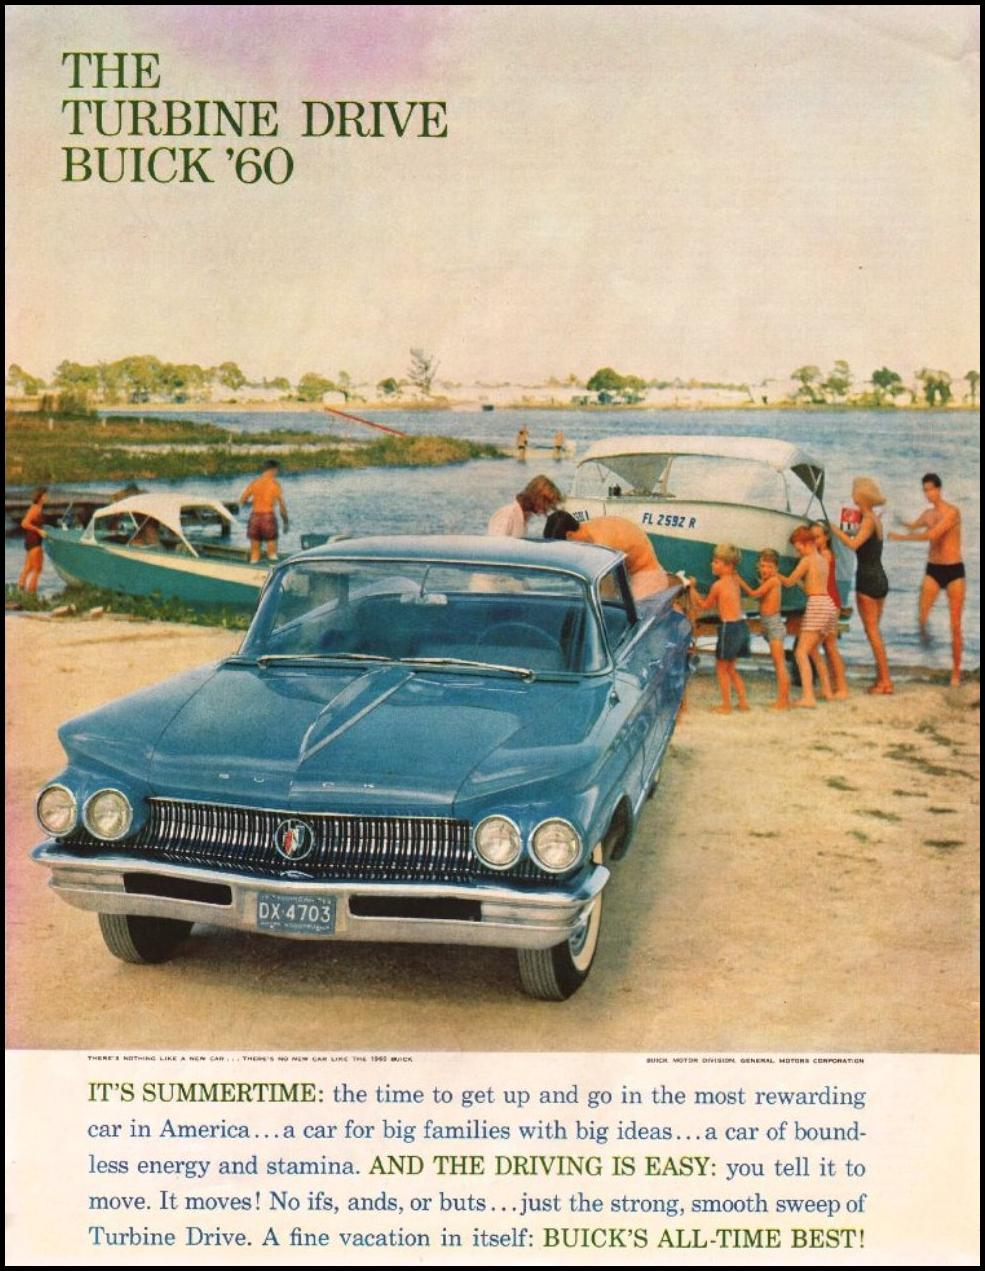 BUICK AUTOMOBILES SATURDAY EVENING POST 06/04/1960 p. 48